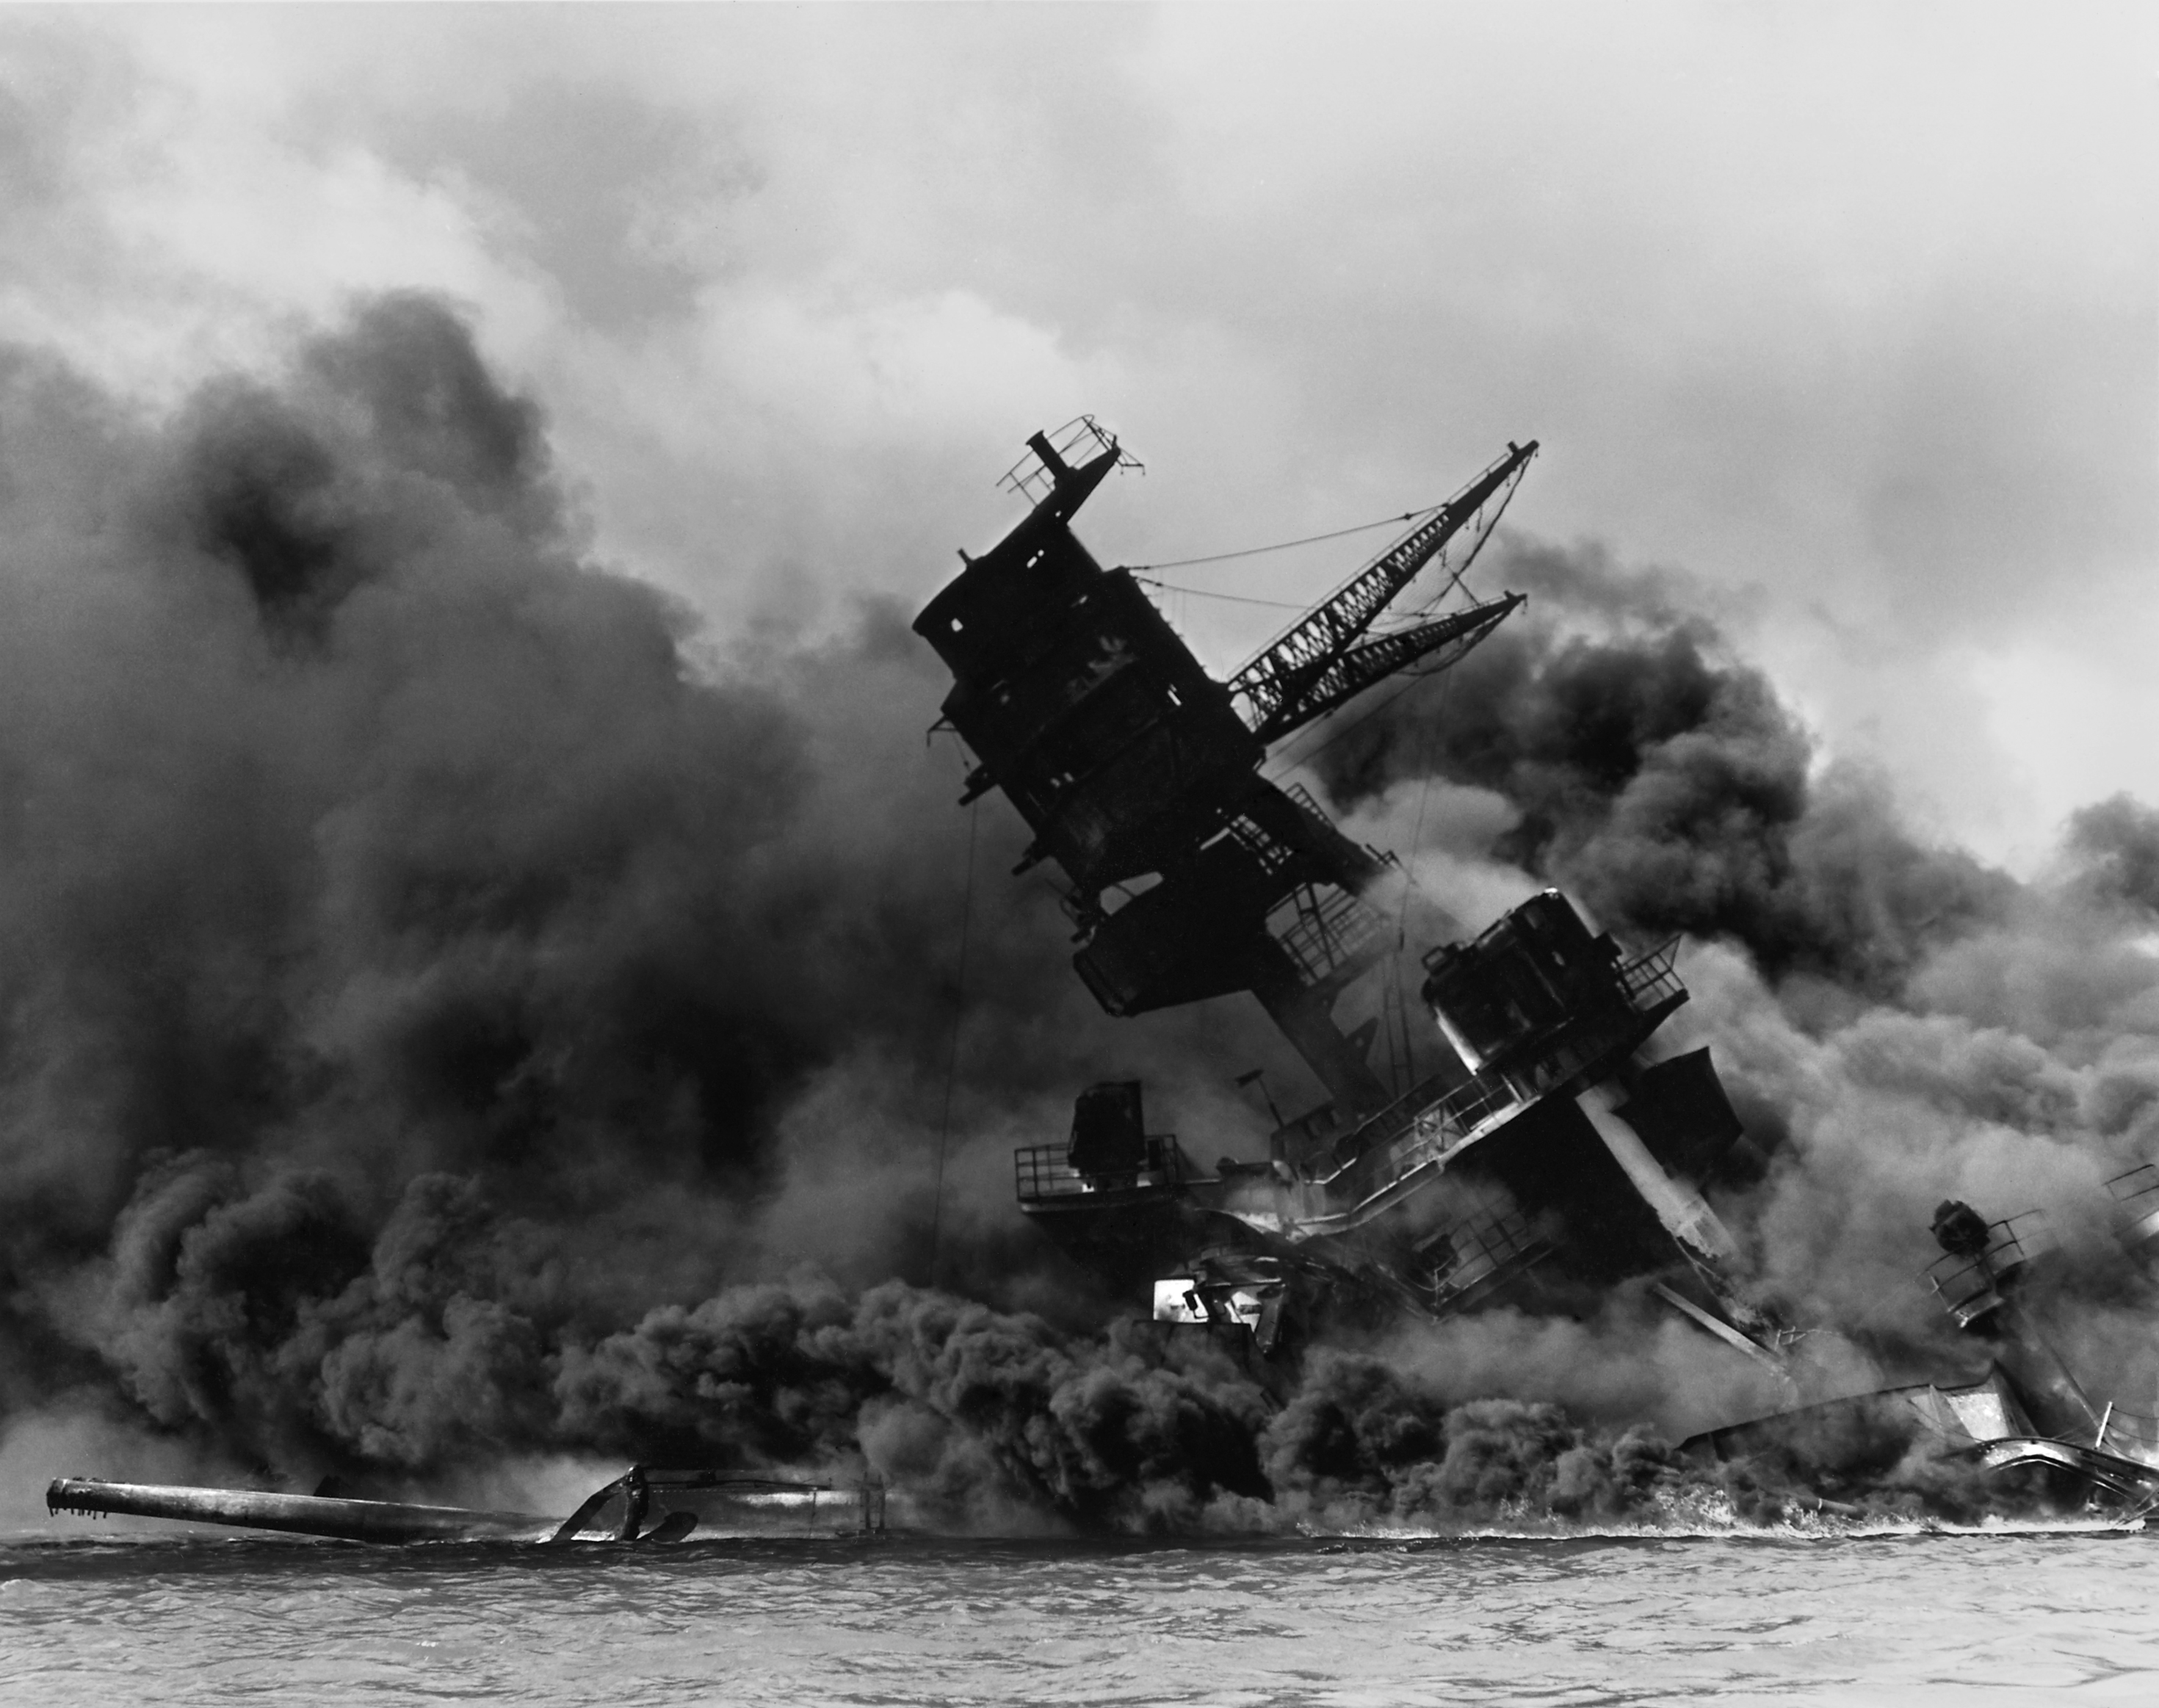 The_USS_Arizona_(BB-39)_burning_after_the_Japanese_attack_on_Pearl_Harbor_-_NARA_195617_-_Edit.jpg